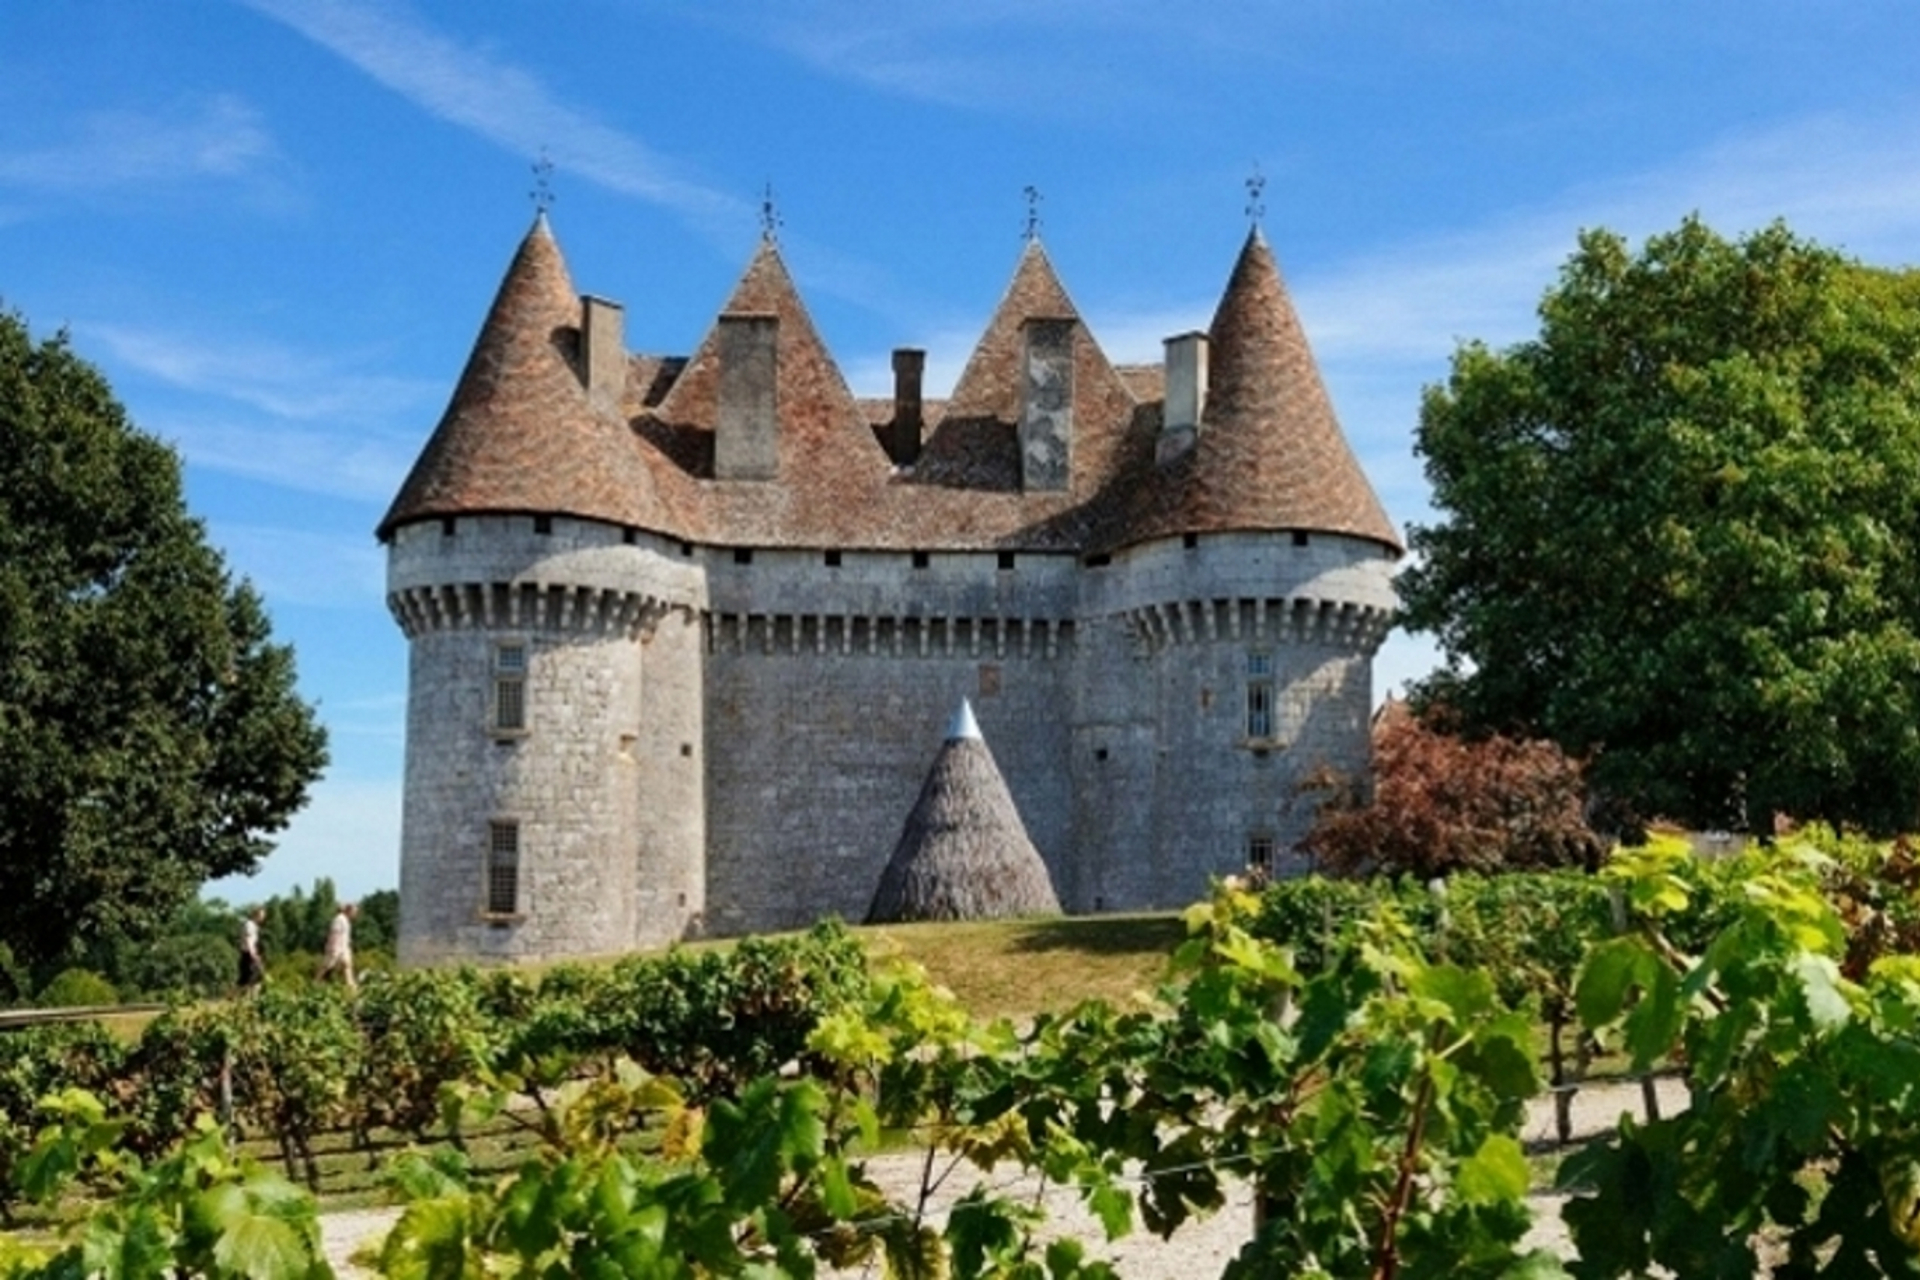 Perigord-dordogne-bergerac-monbazillac-France-wine-wineyards